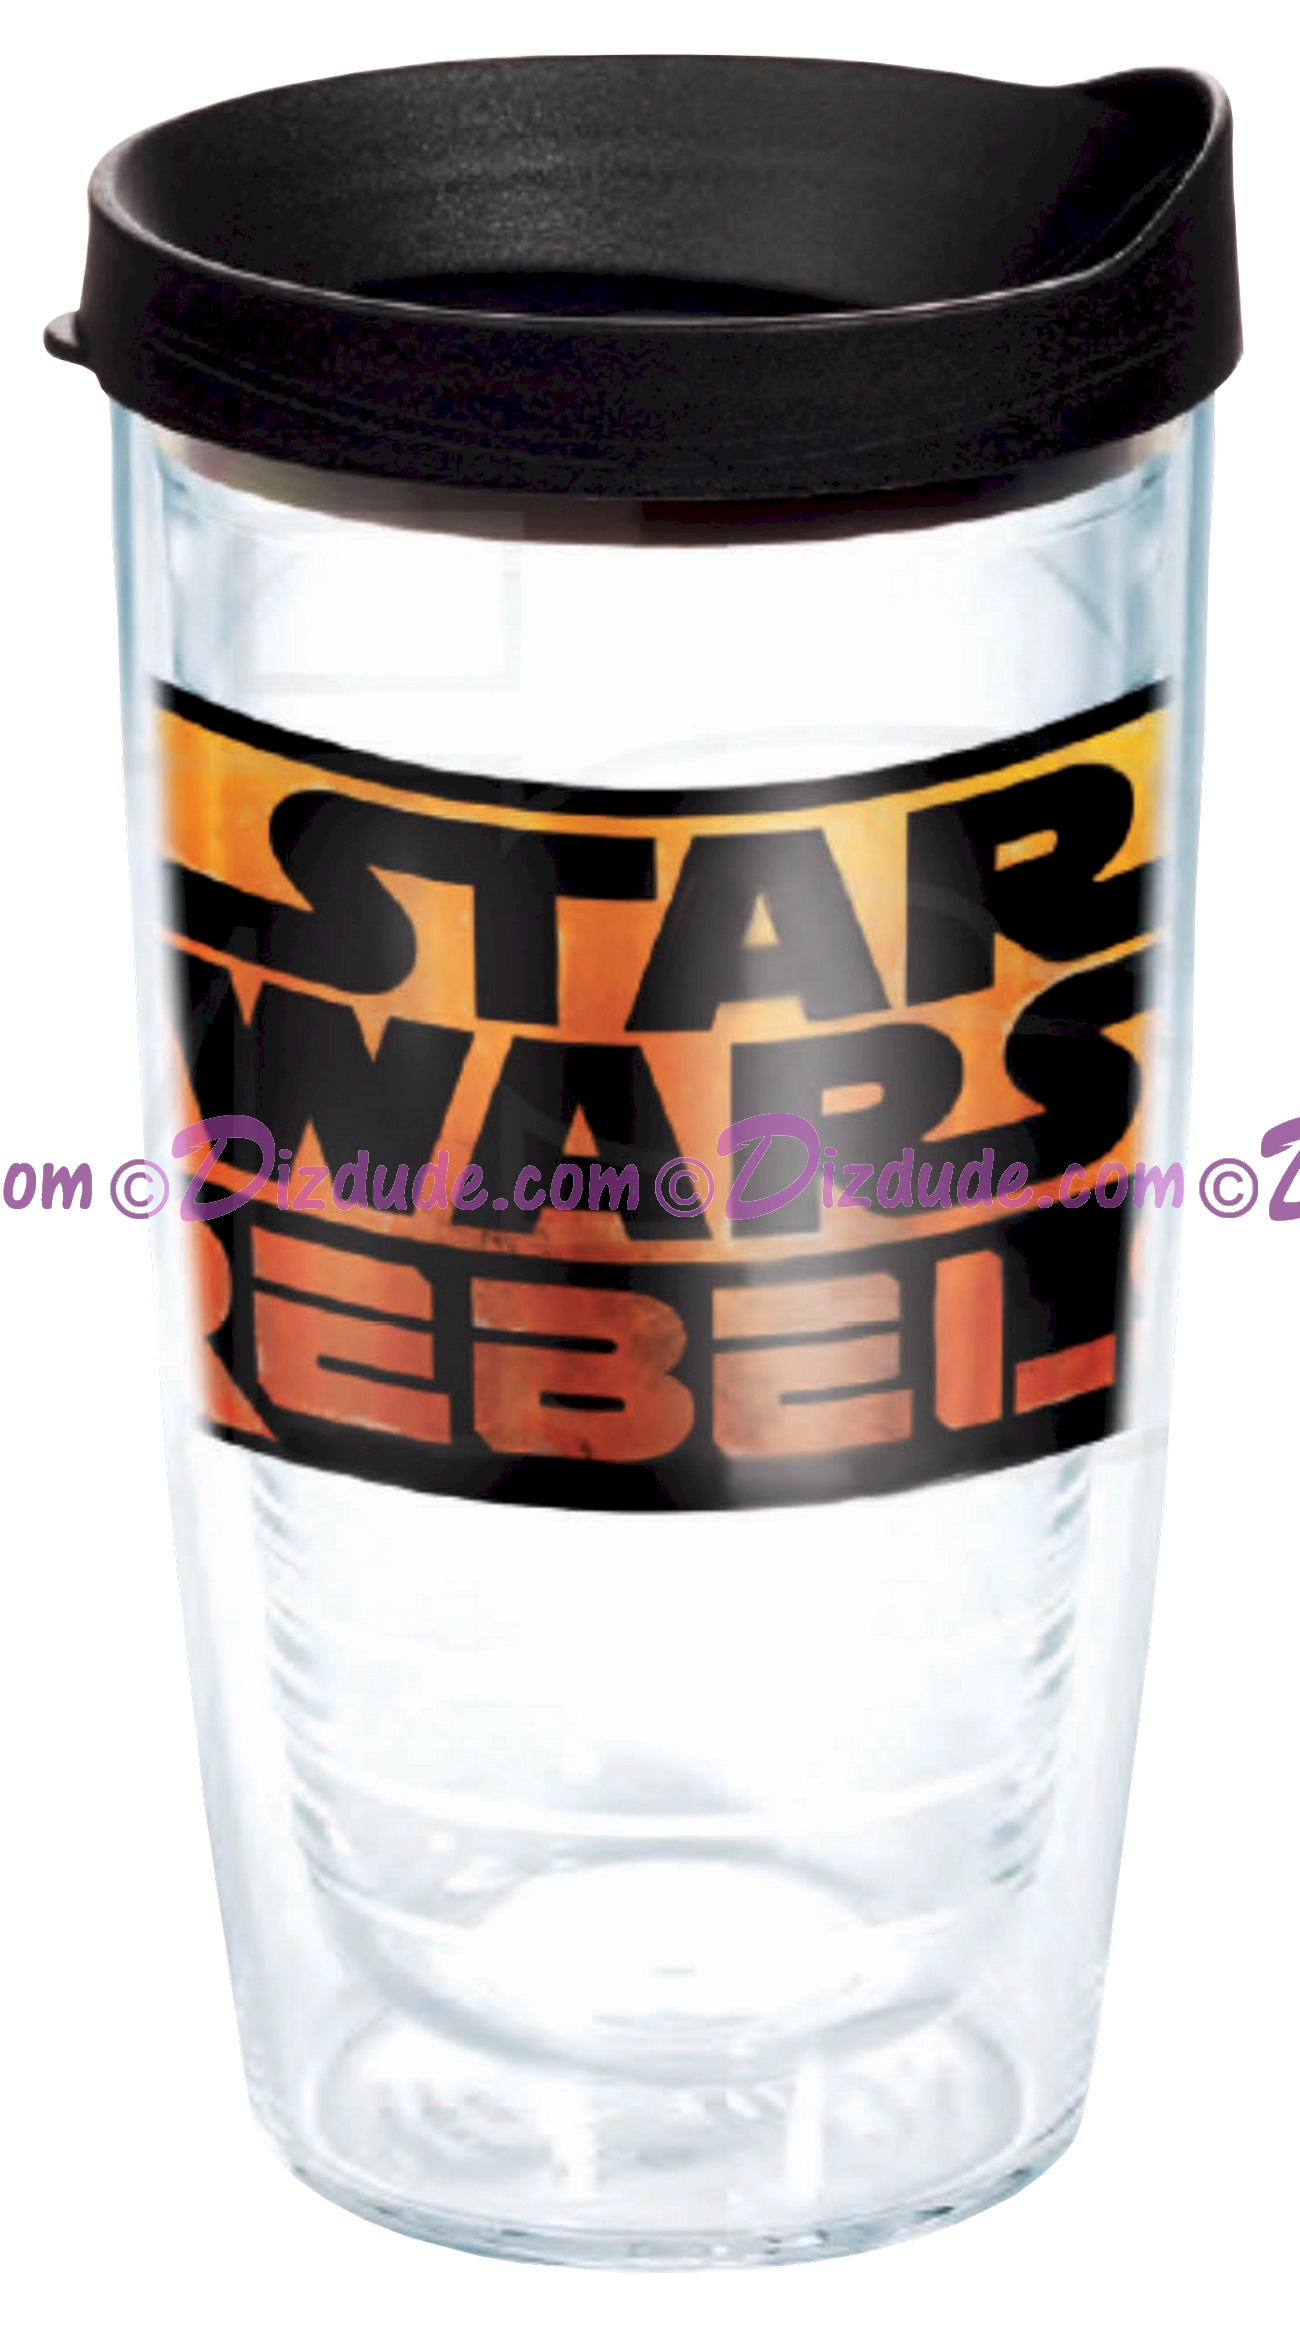 Star Wars REBELS Recruitment Event Attendee Tumbler Limited Edition - Disney Star Wars Weekends 2014 © Dizdude.com